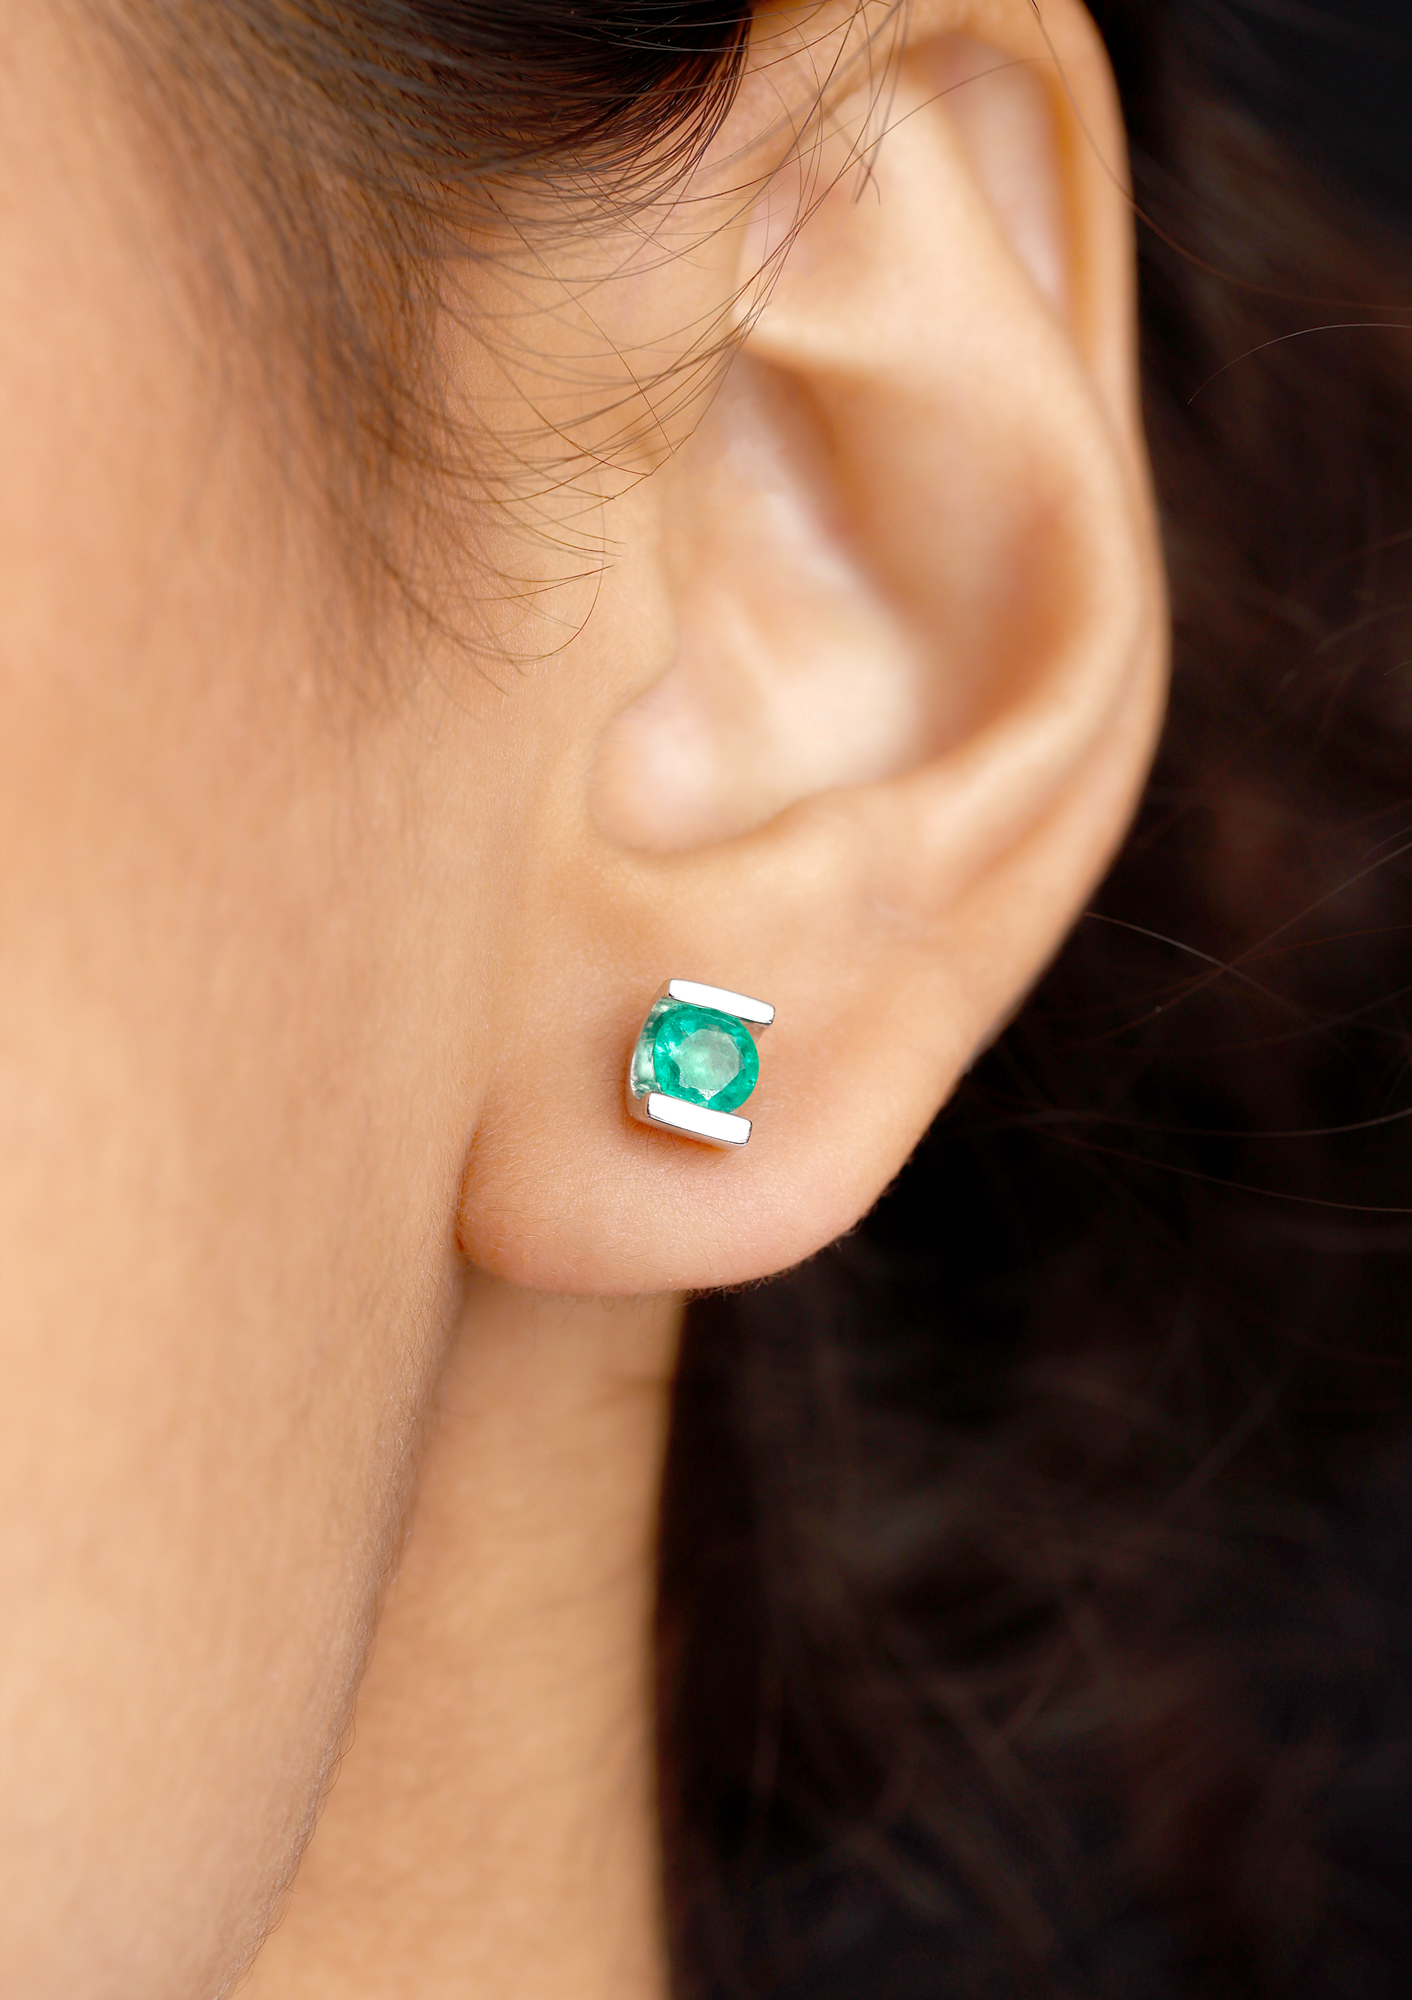 5 MM Round Cut Emerald Solitaire Stud Earrings in Bar Setting